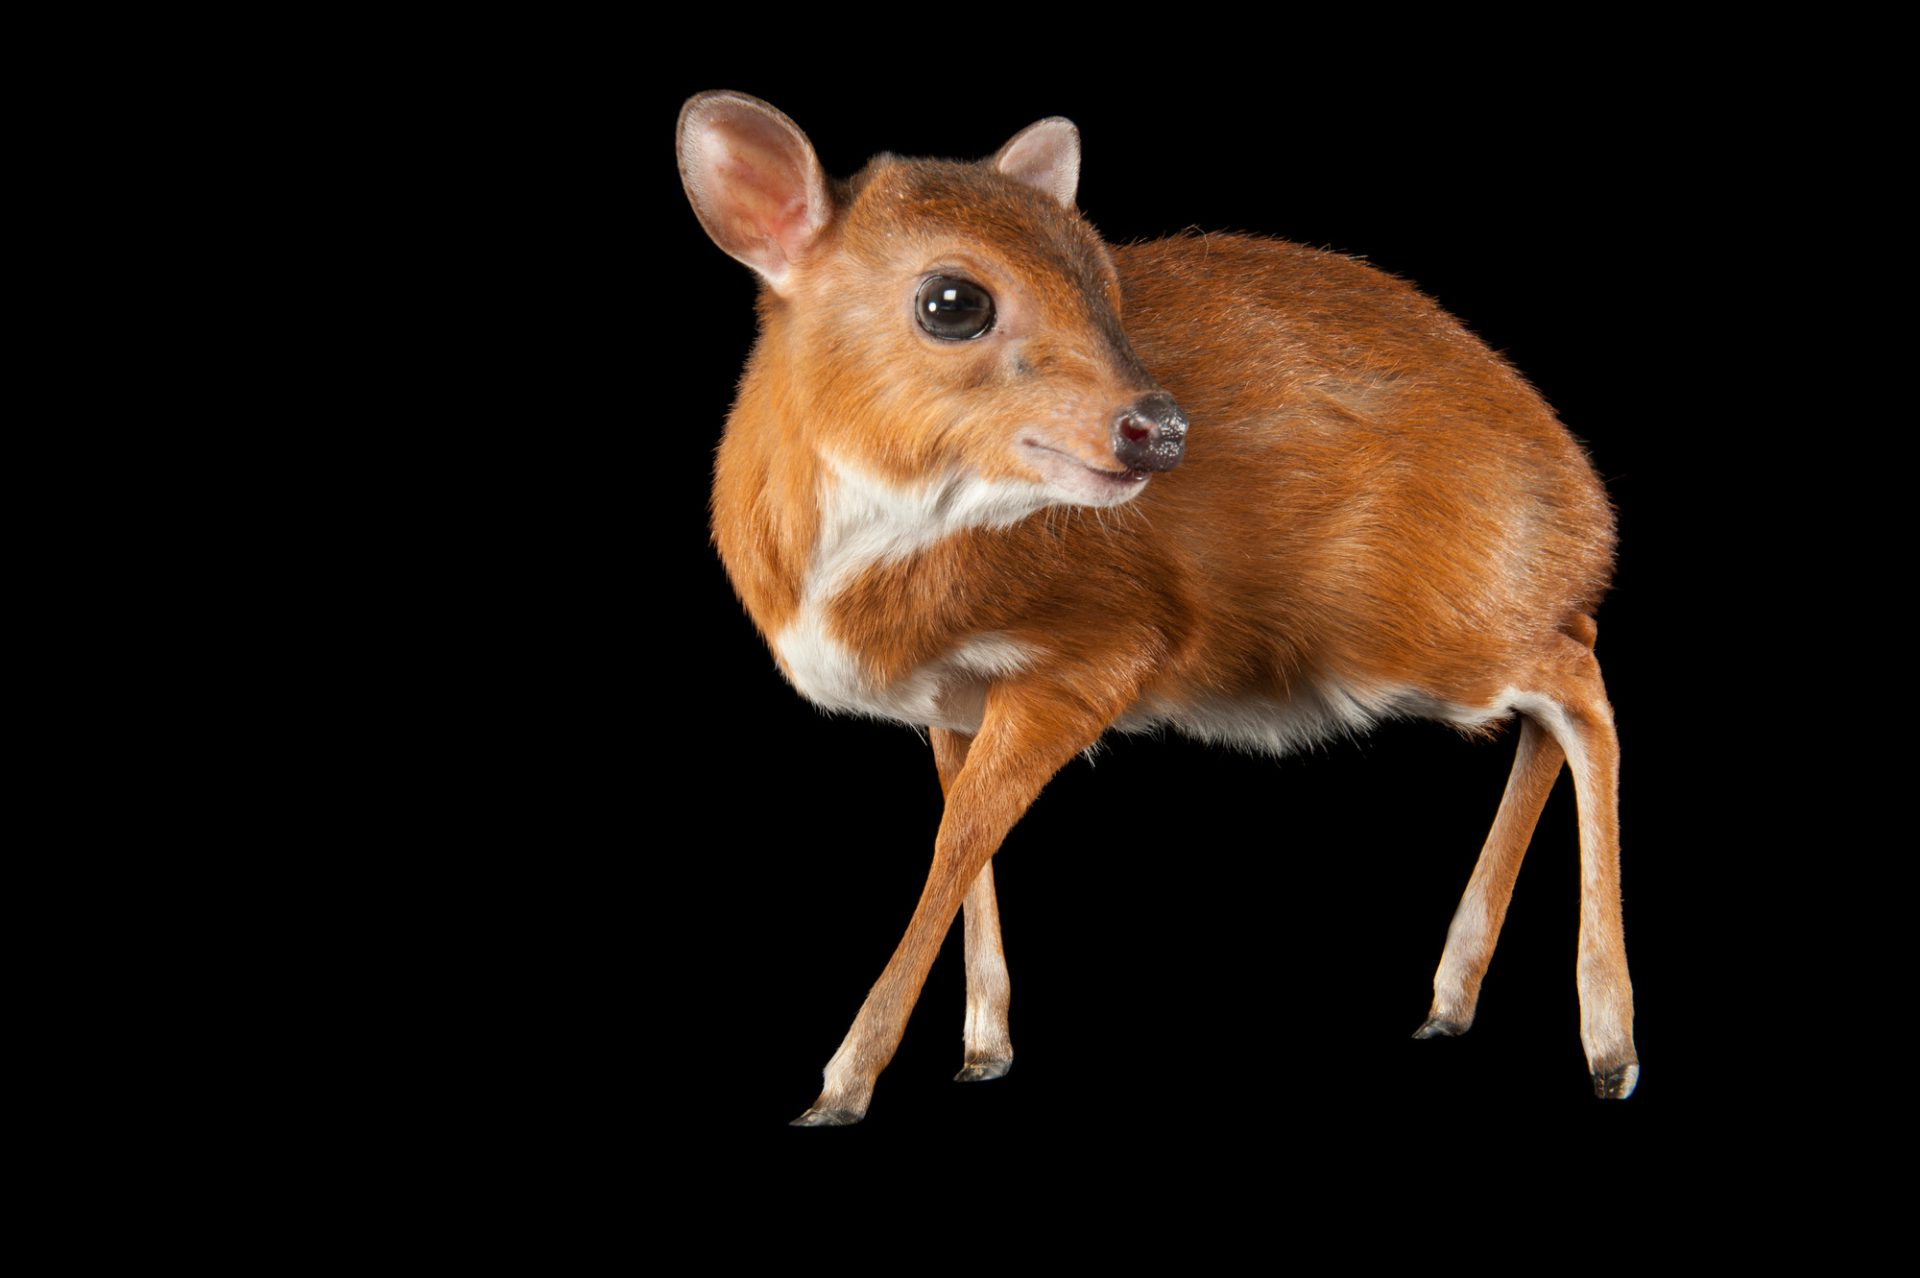 Royal Antelope (Neotragus pygmaeus). This species weighs 9-10 pounds making it the smallest of all antelopes.